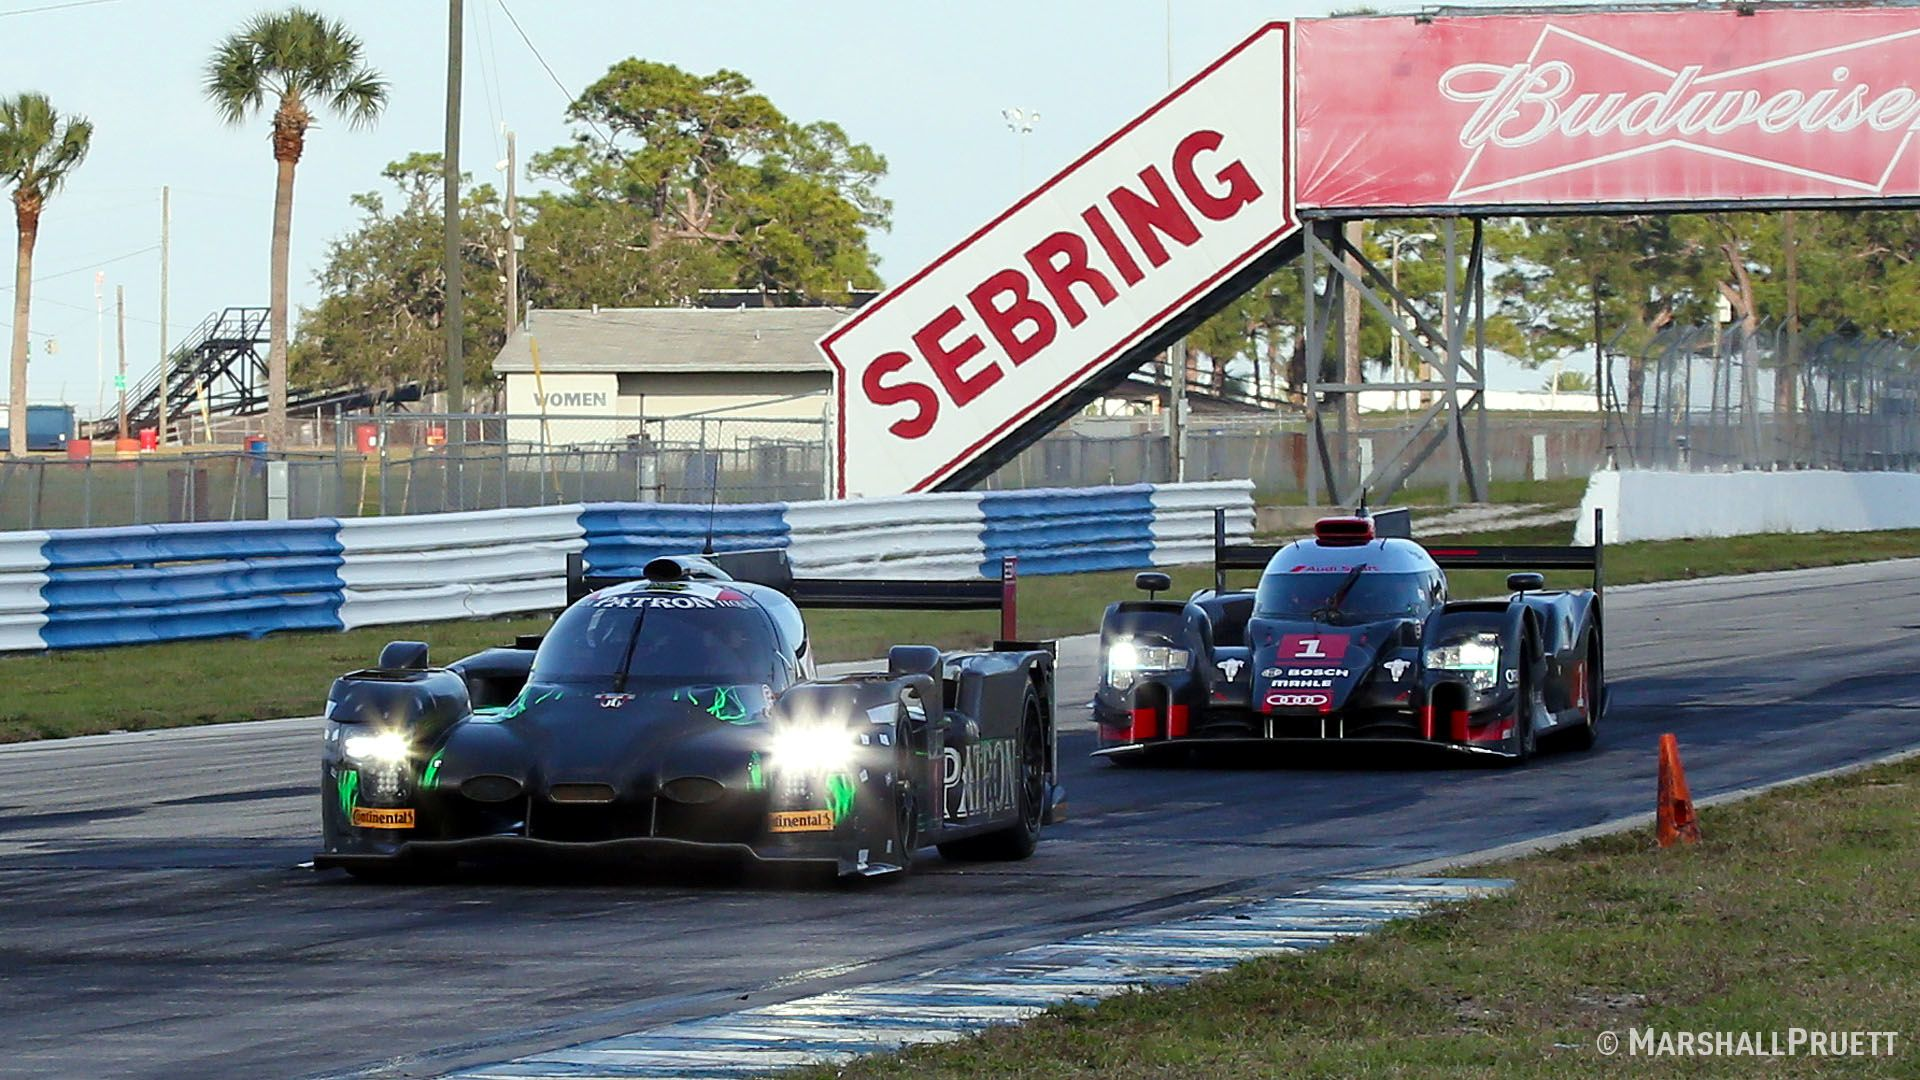 Testing at Sebring International Racing on March 4 with the new Audi R18, Nissan GT-R LM NISMo, and Tequila Patron ESM HPD ARX-04b ahead of the 2015 World Endurance Championship.